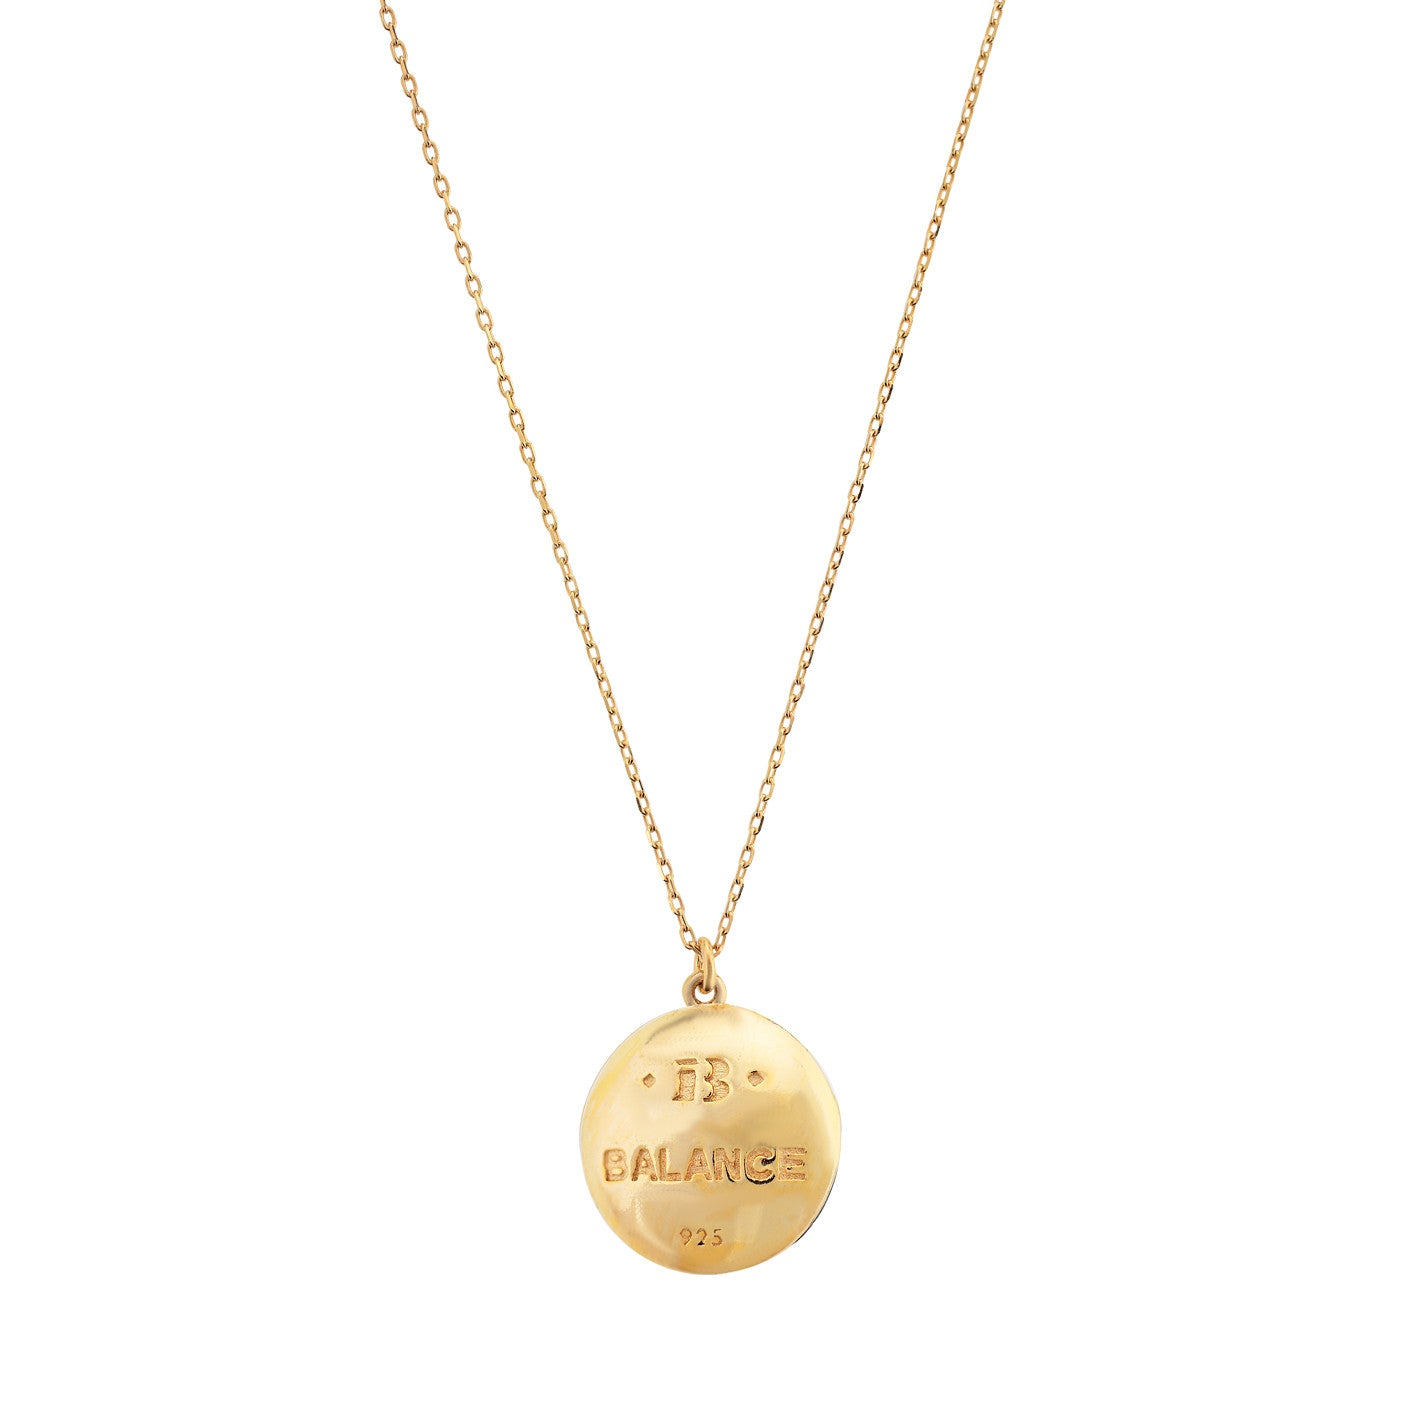 with initials guide every people these com style can names at gift carrie necklace mothers meaningful s dates necklaces personal day be price hoffman mother engraved or p jewelry